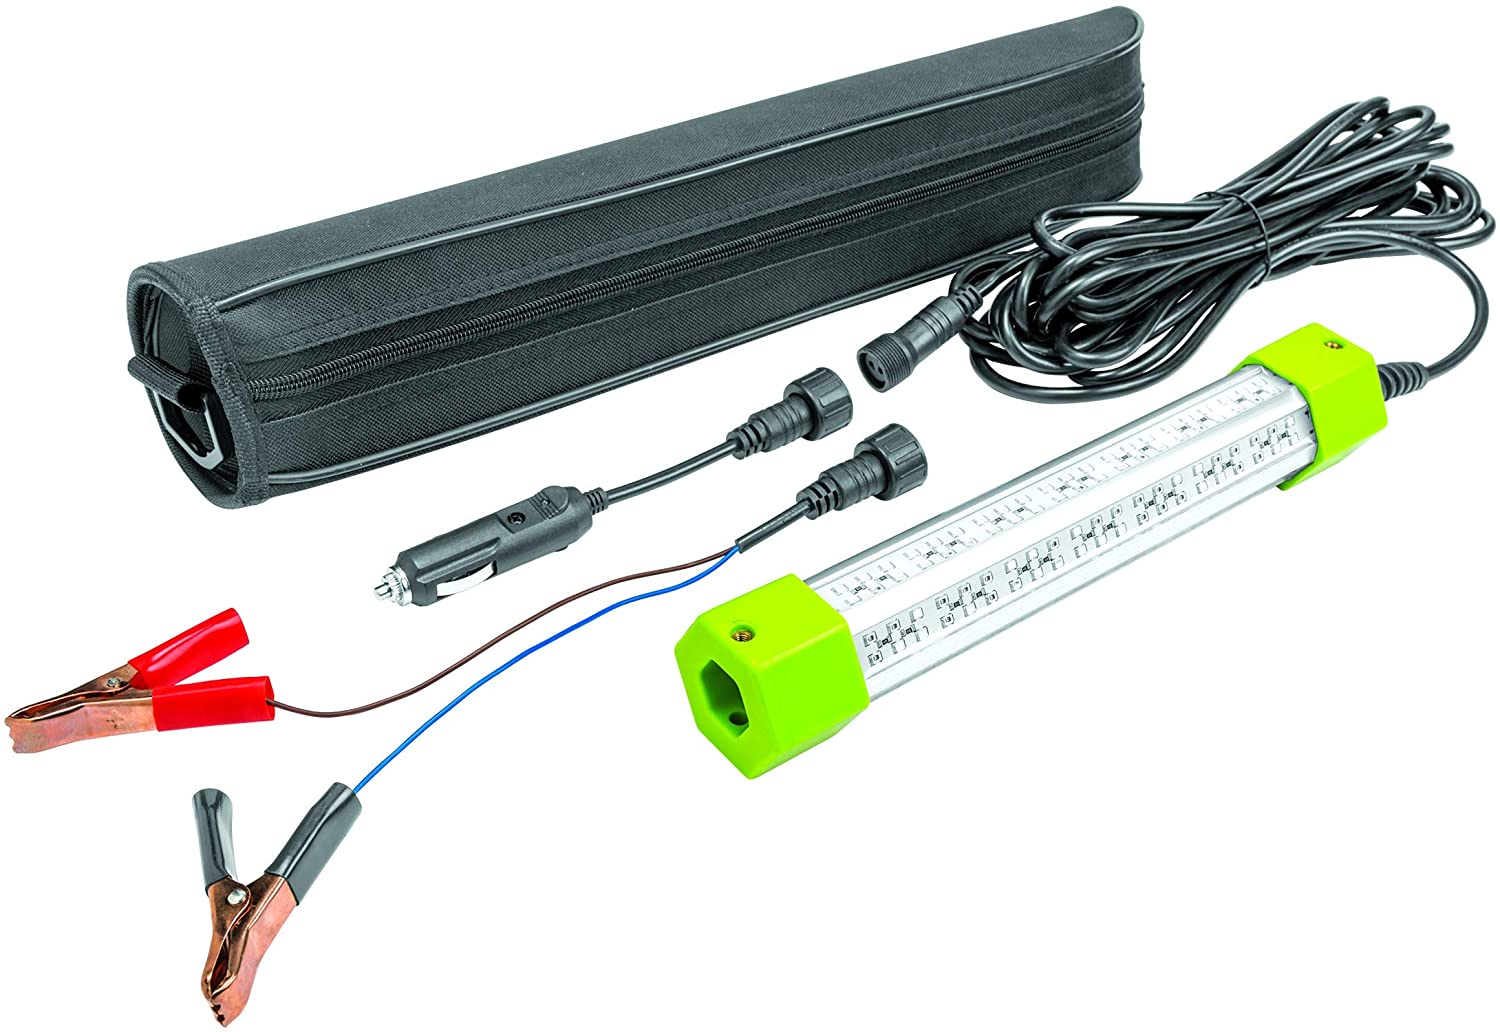 Submersible Light - 1600 Lumen| Underwater Fish Attractor Light & Cable, Green